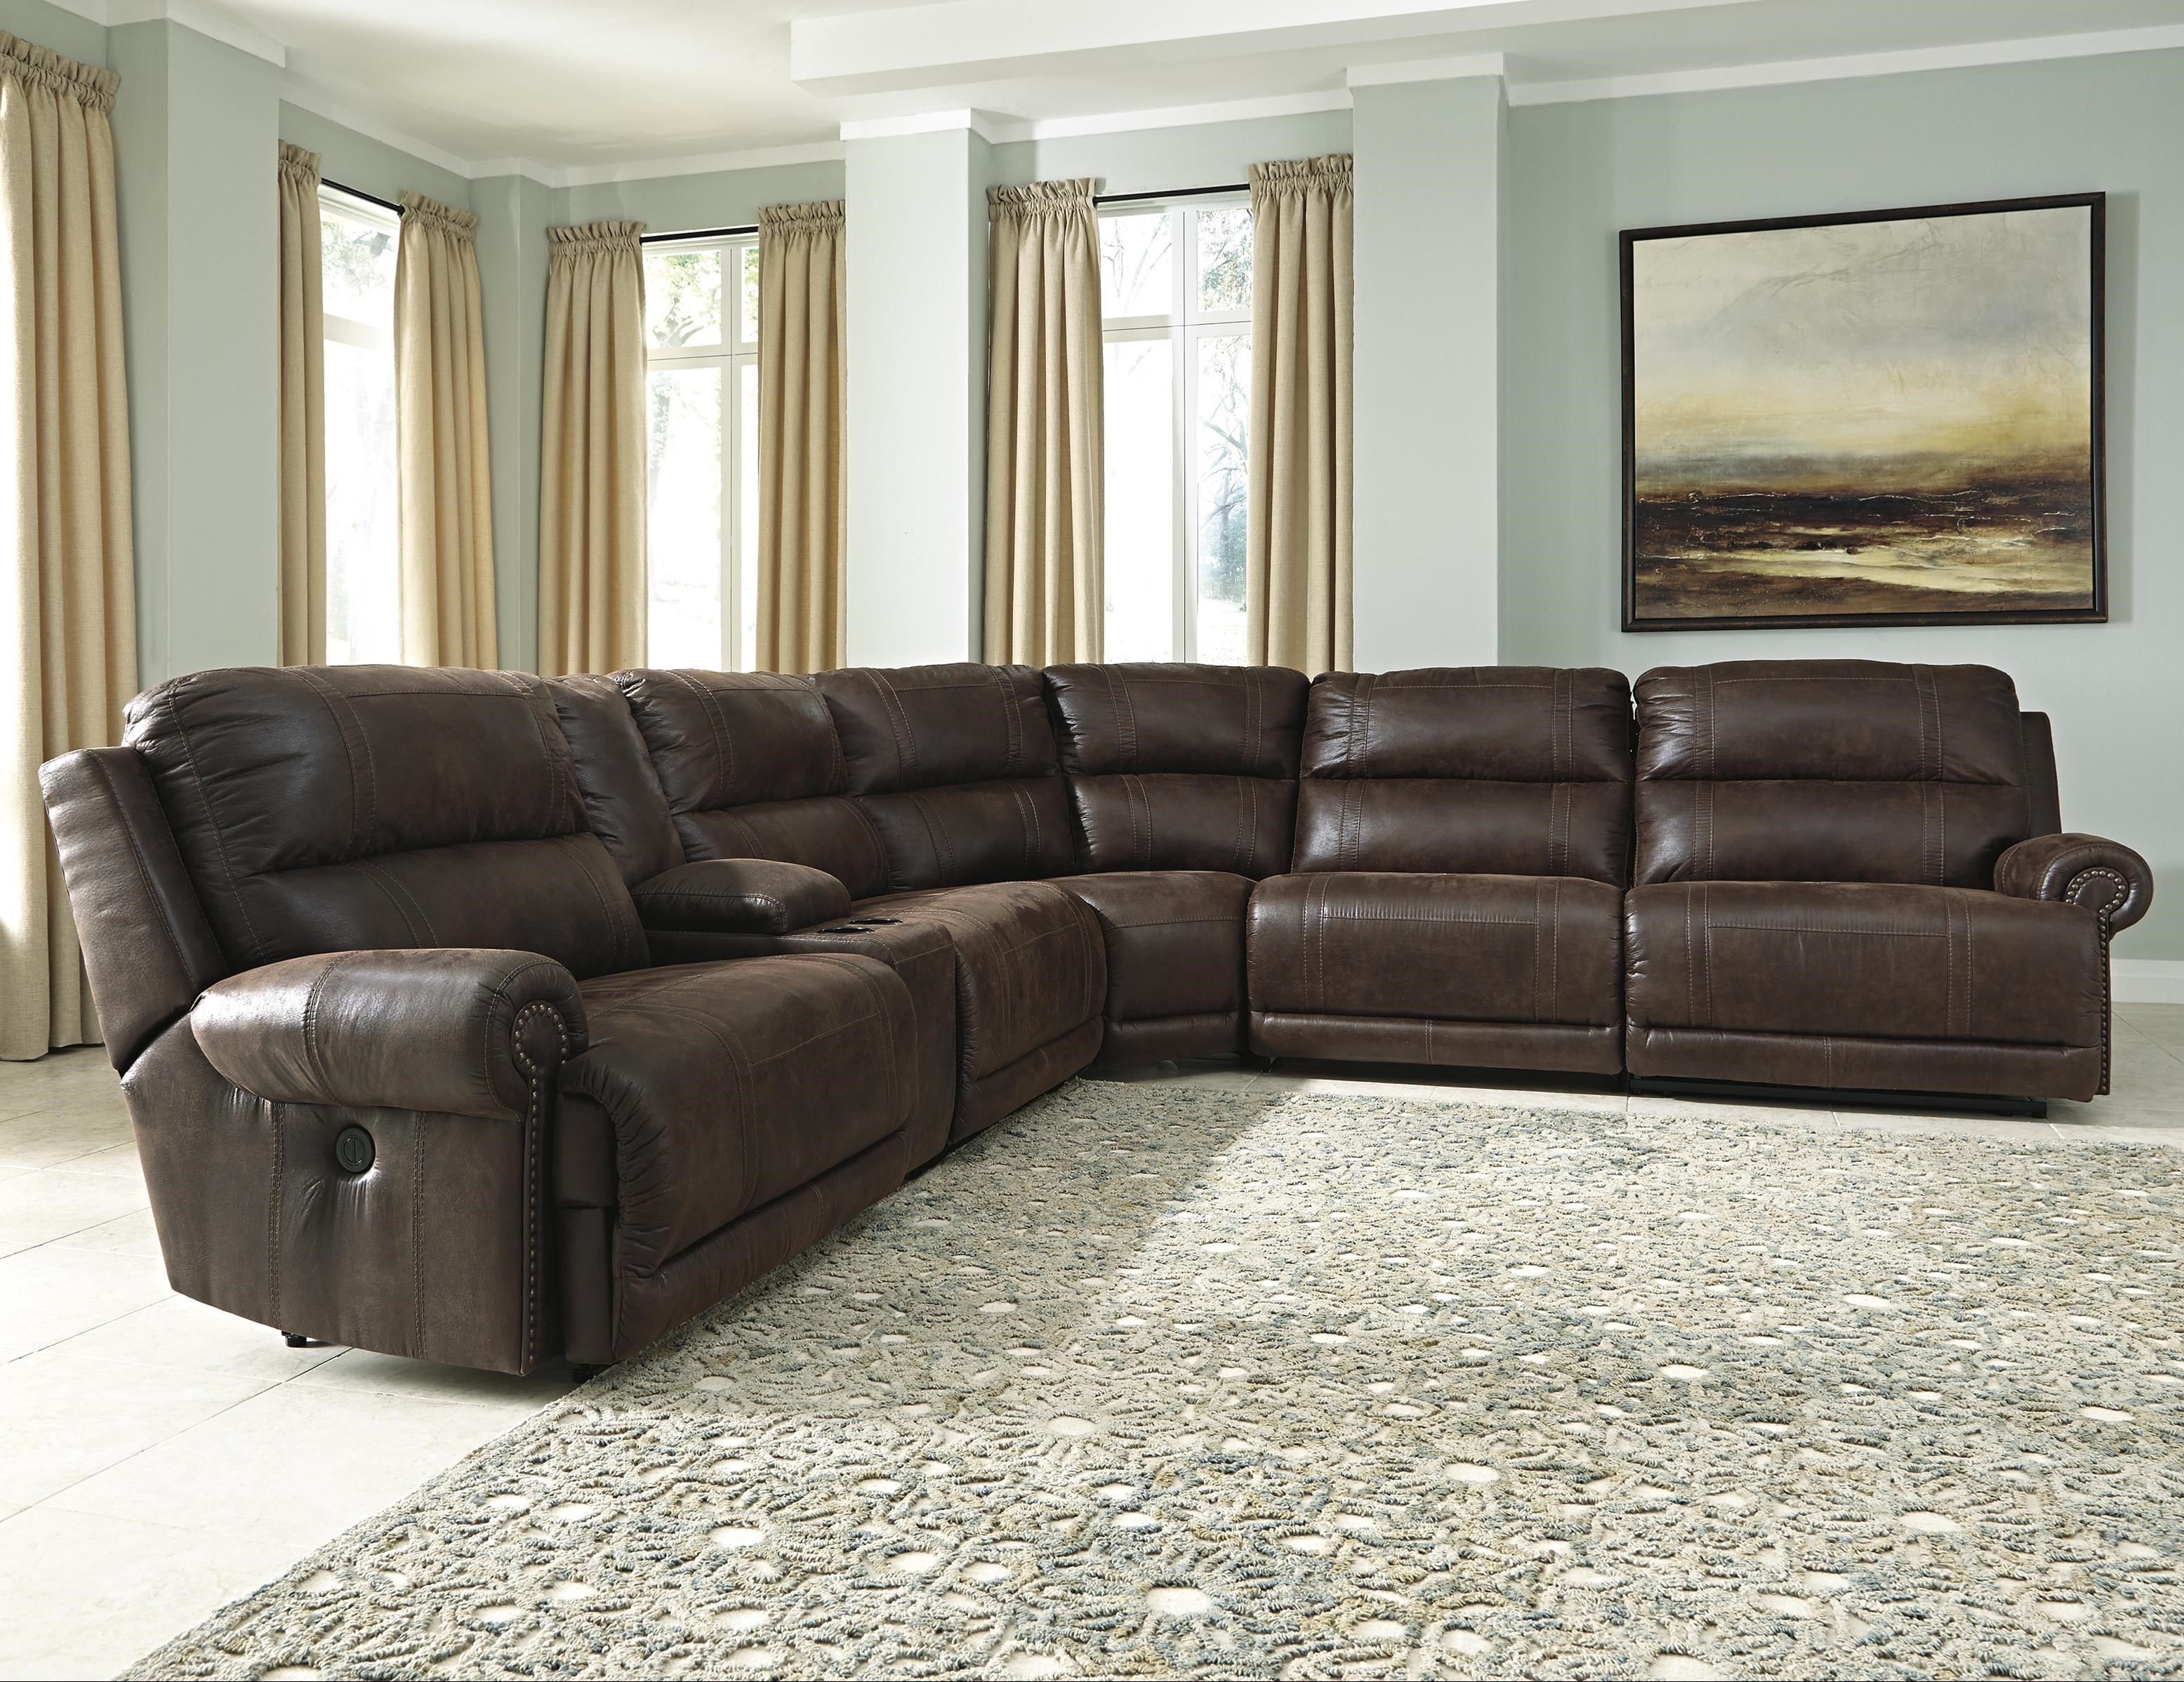 styleline luttrell 6piece reclining sectional with console